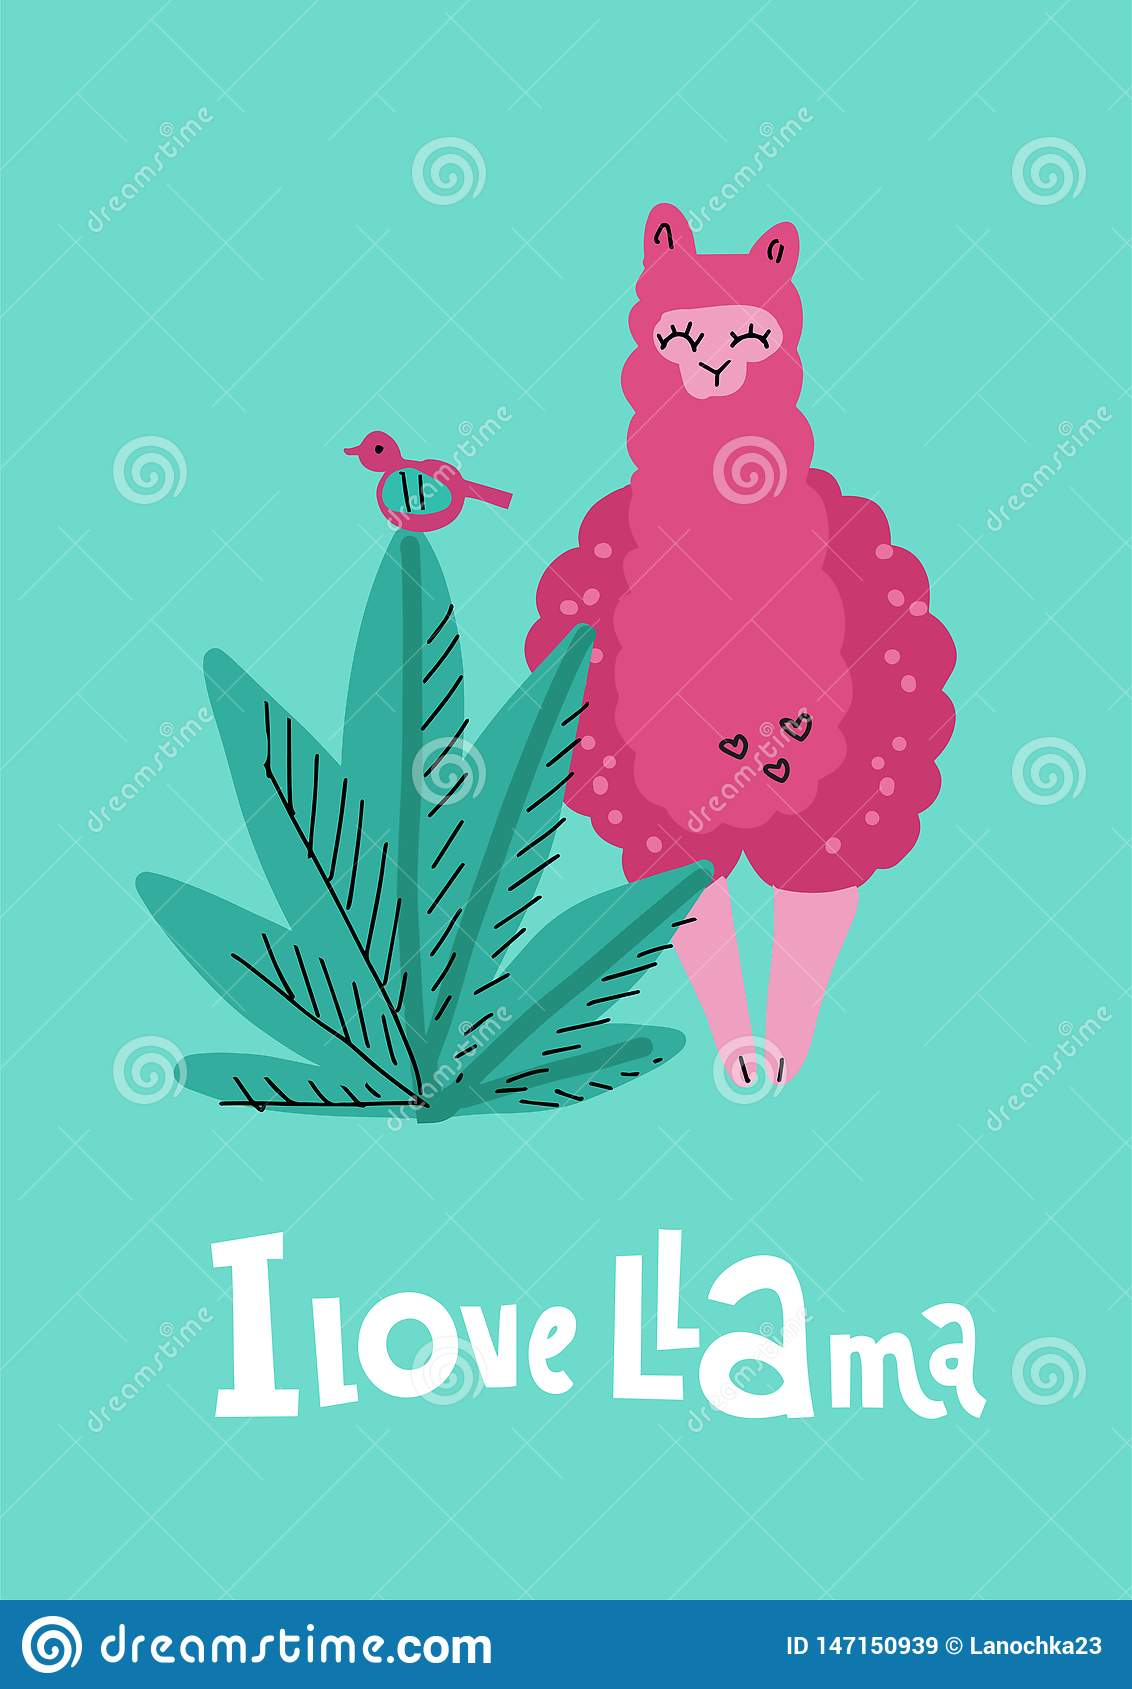 I love llama greening card with pink hand drawn alpaca with plant, bird and lettering qoute. Vector baby animal illustration for